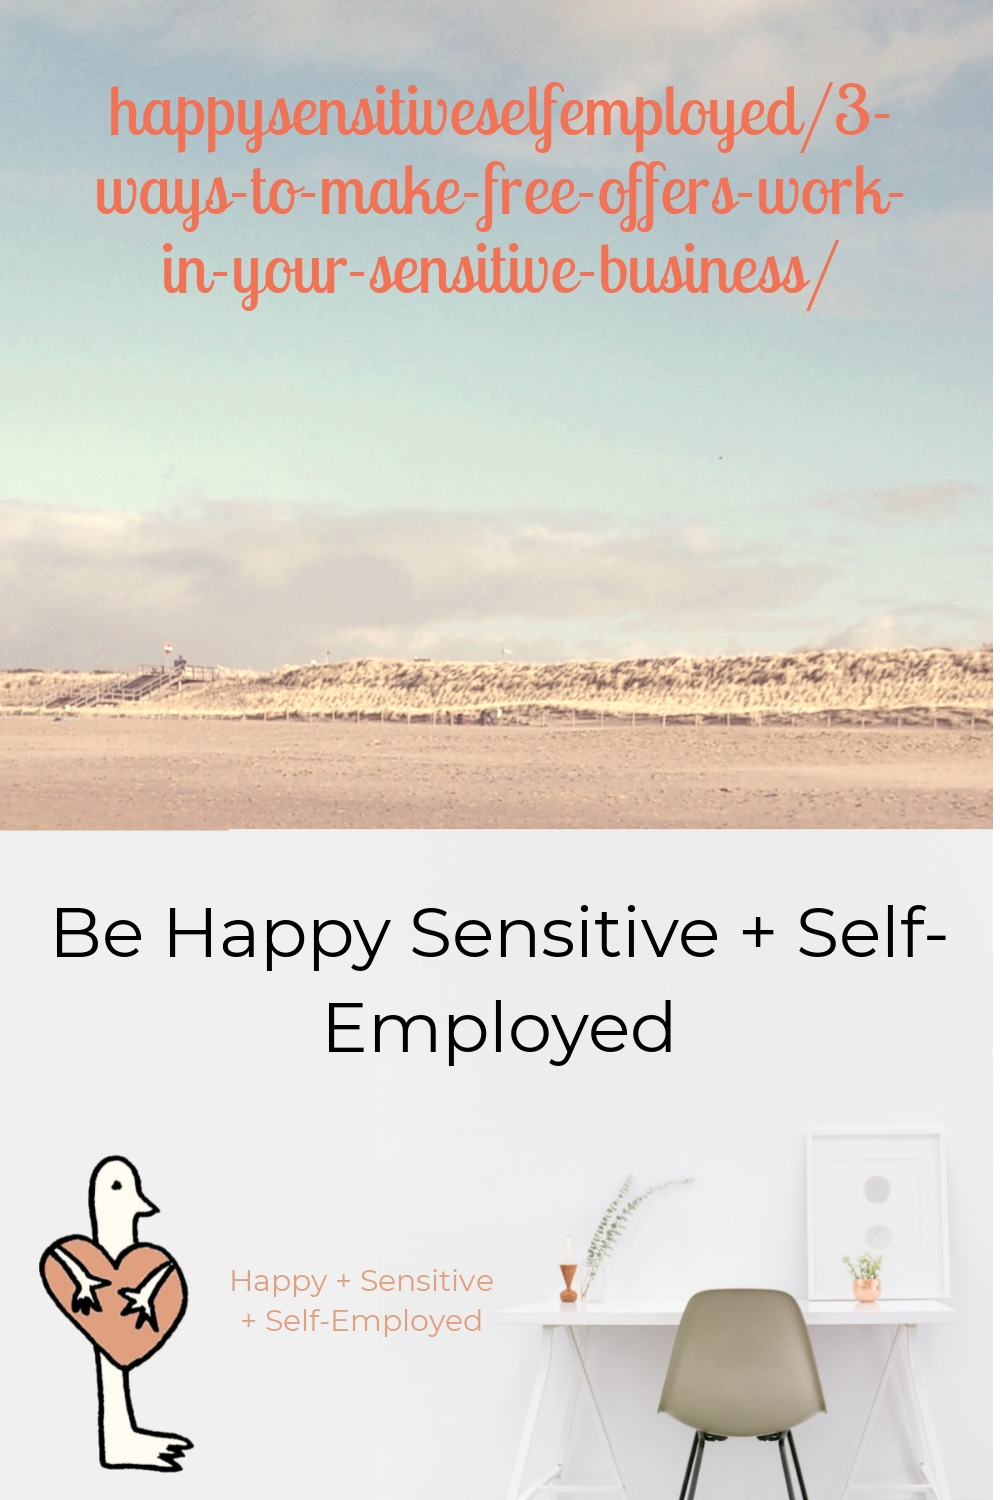 happysensitiveselfemployed/3-ways-to-make-free-offers-work-in-your-sensitive-business/